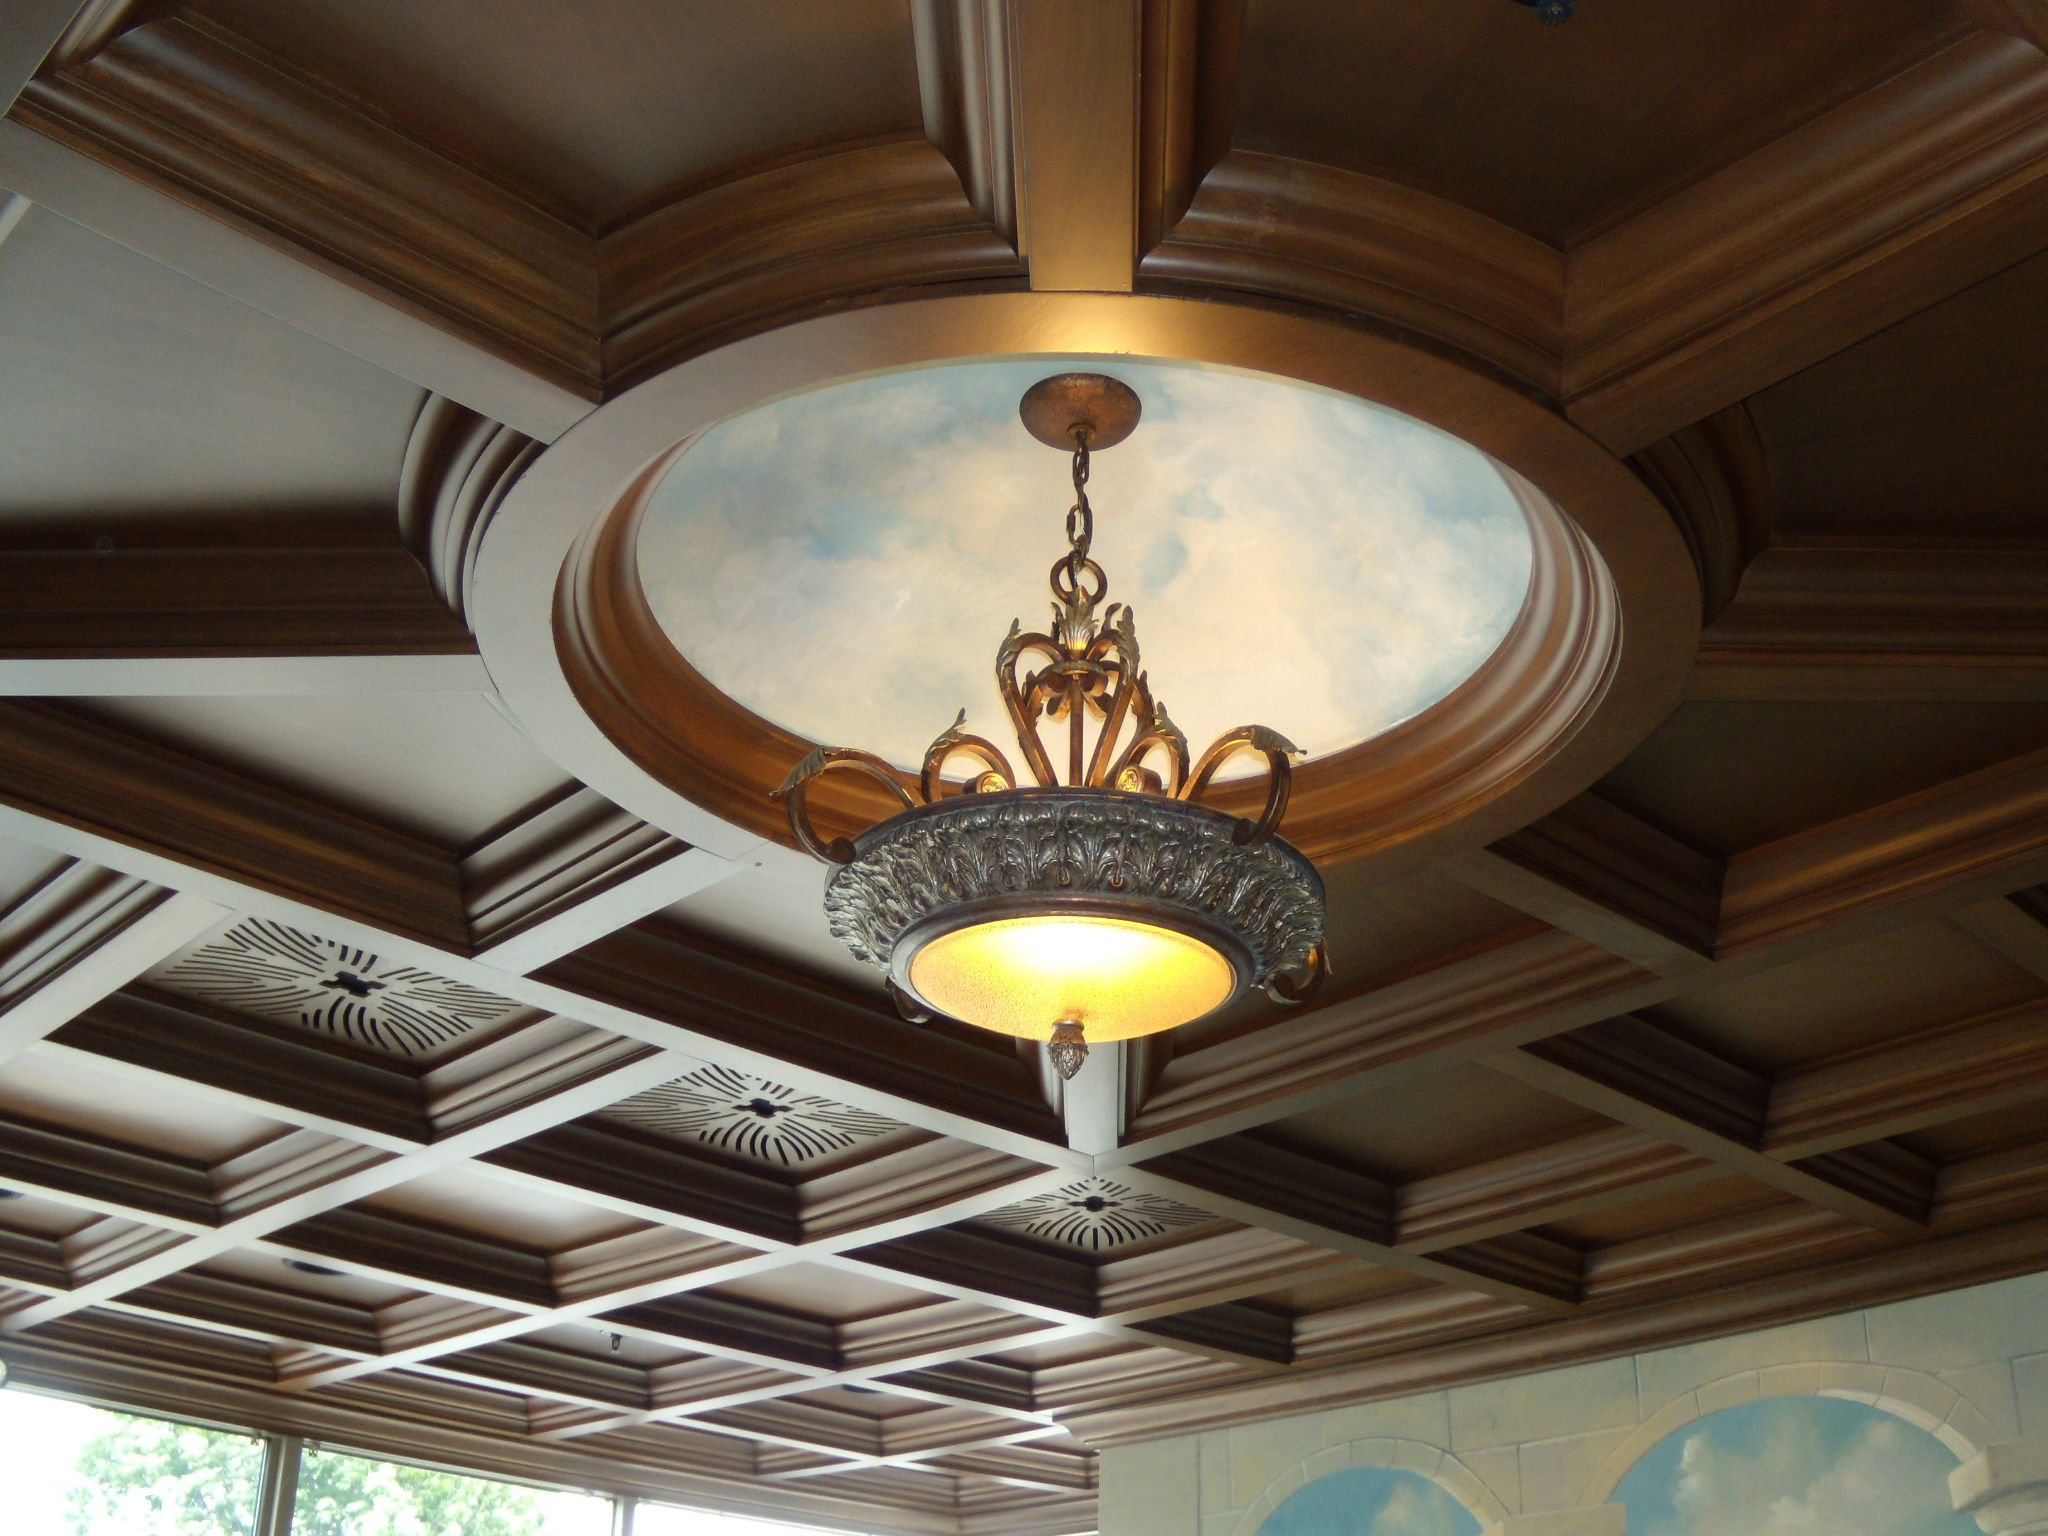 Victorian Ceilings Ideas Woodgrid Coffered Ceilings By Midwestern Wood Products Co